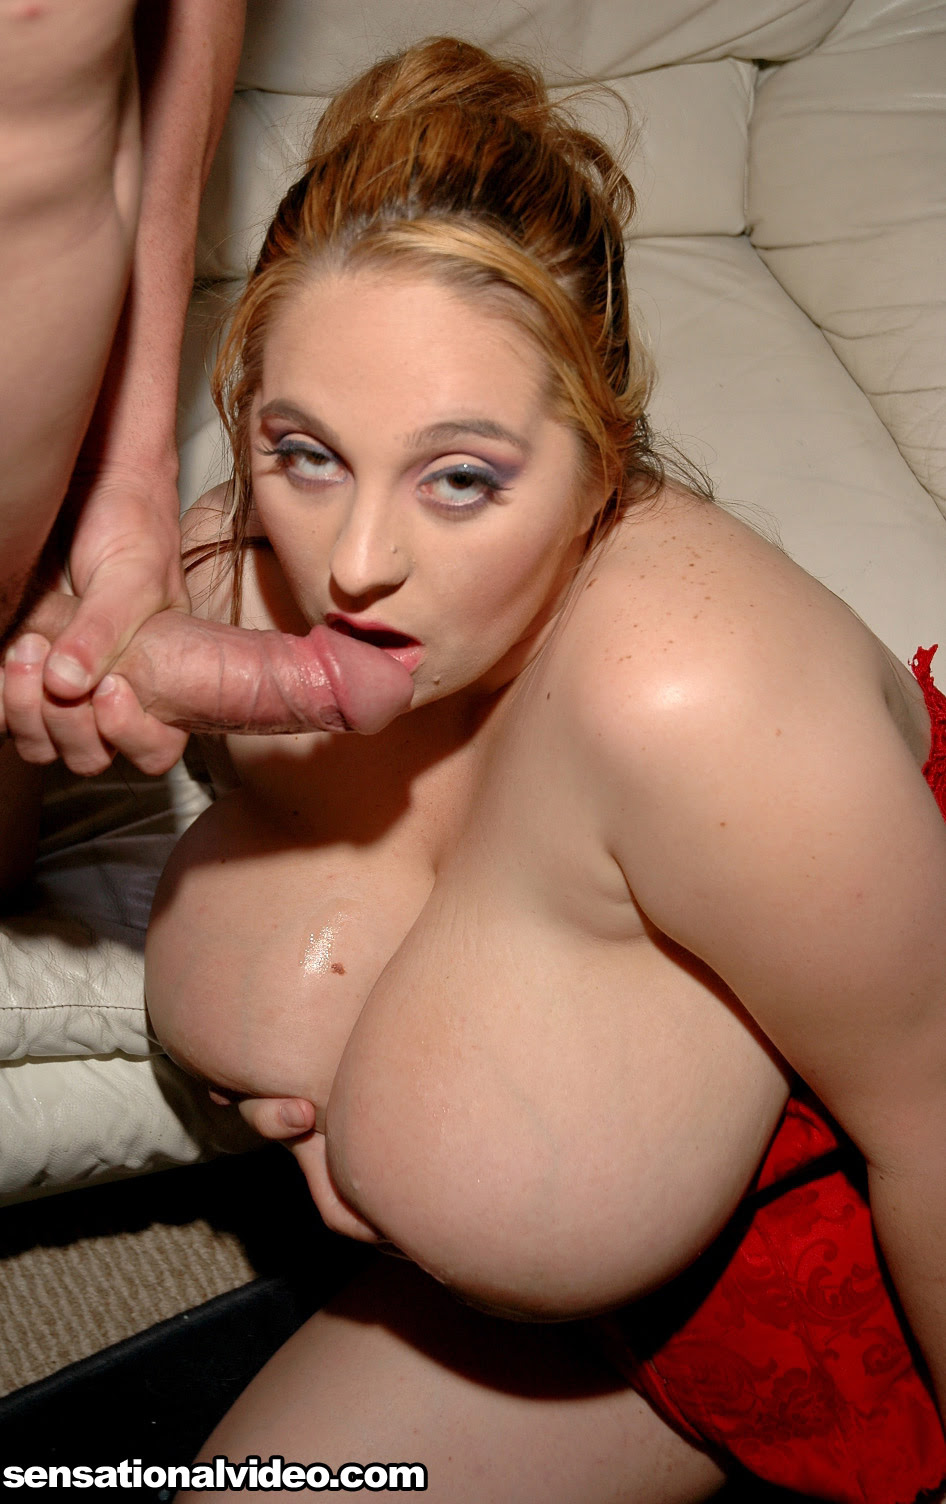 Big Tit Squirt While Fucking